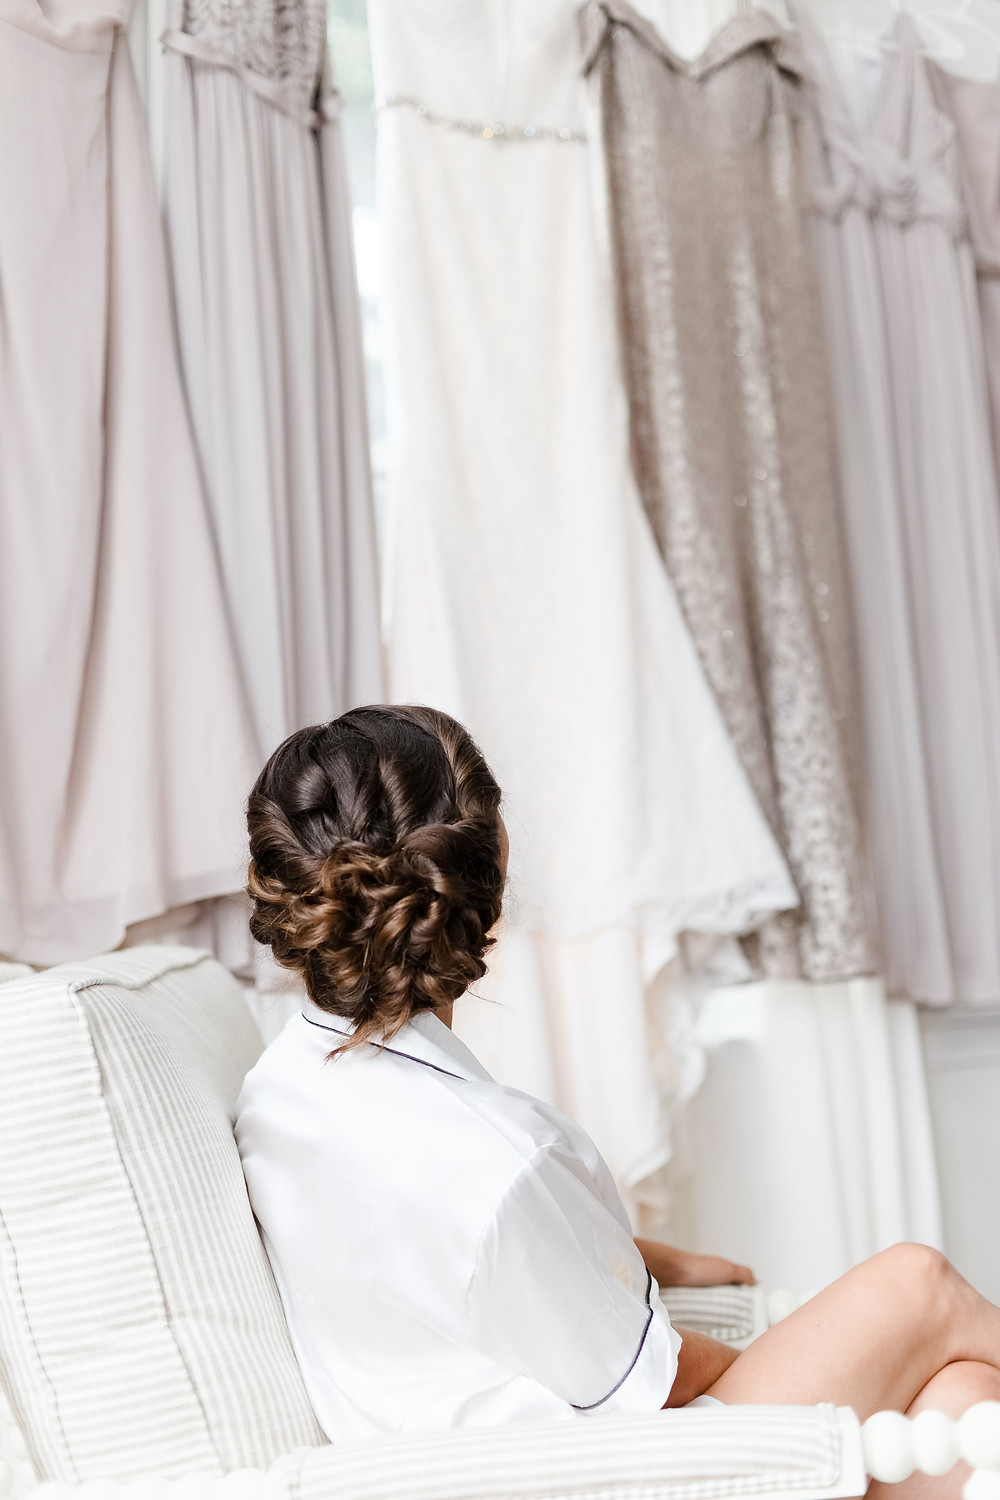 bride looking at wedding dress hanging up